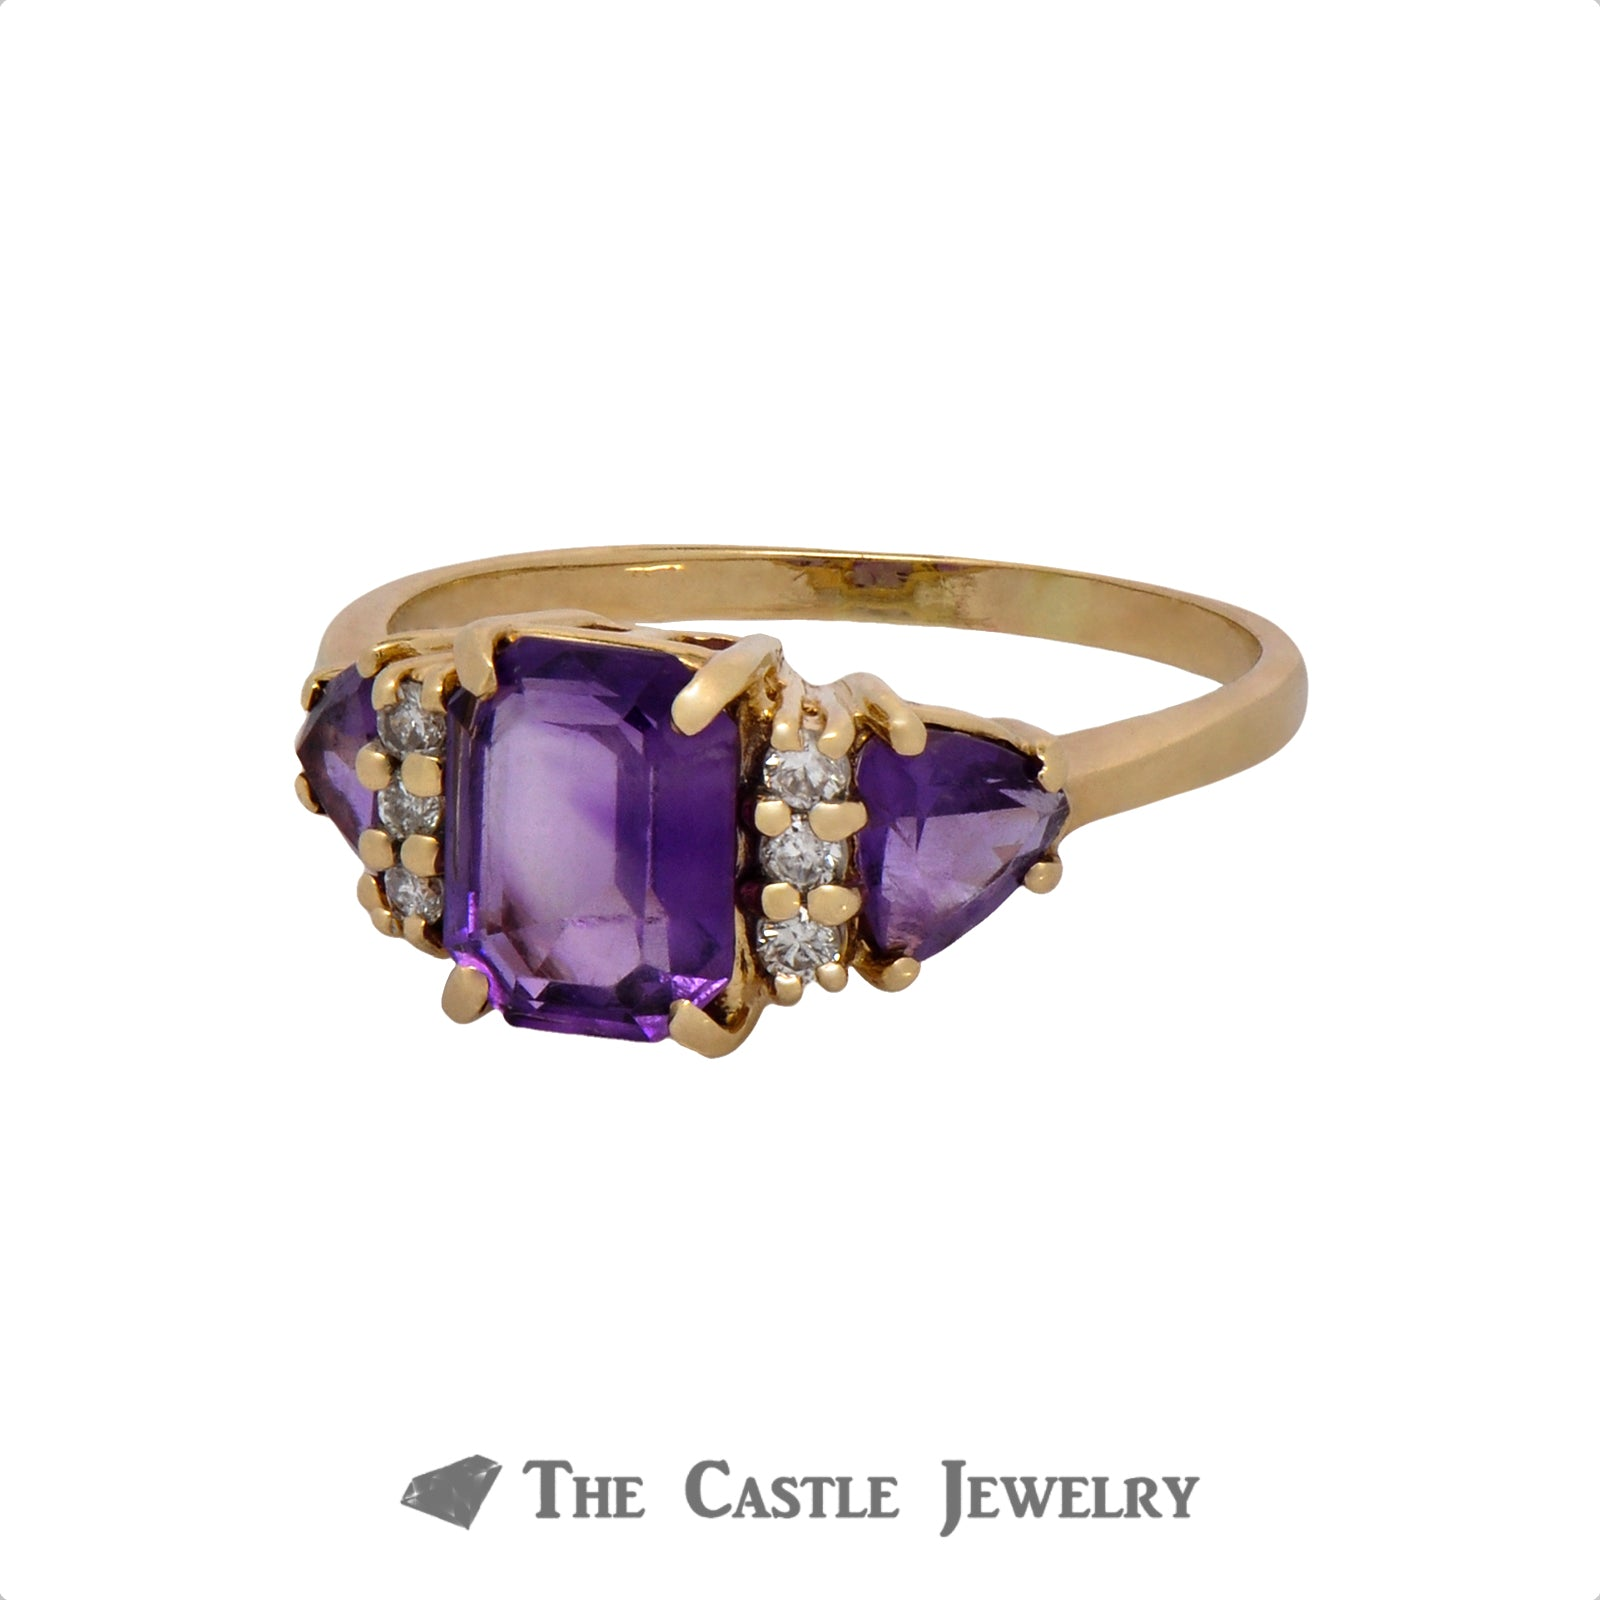 Emerald Cut Amethyst Ring with Trillion Cut Amethyst and Round Diamond Accents in 10k Yellow Gold-2